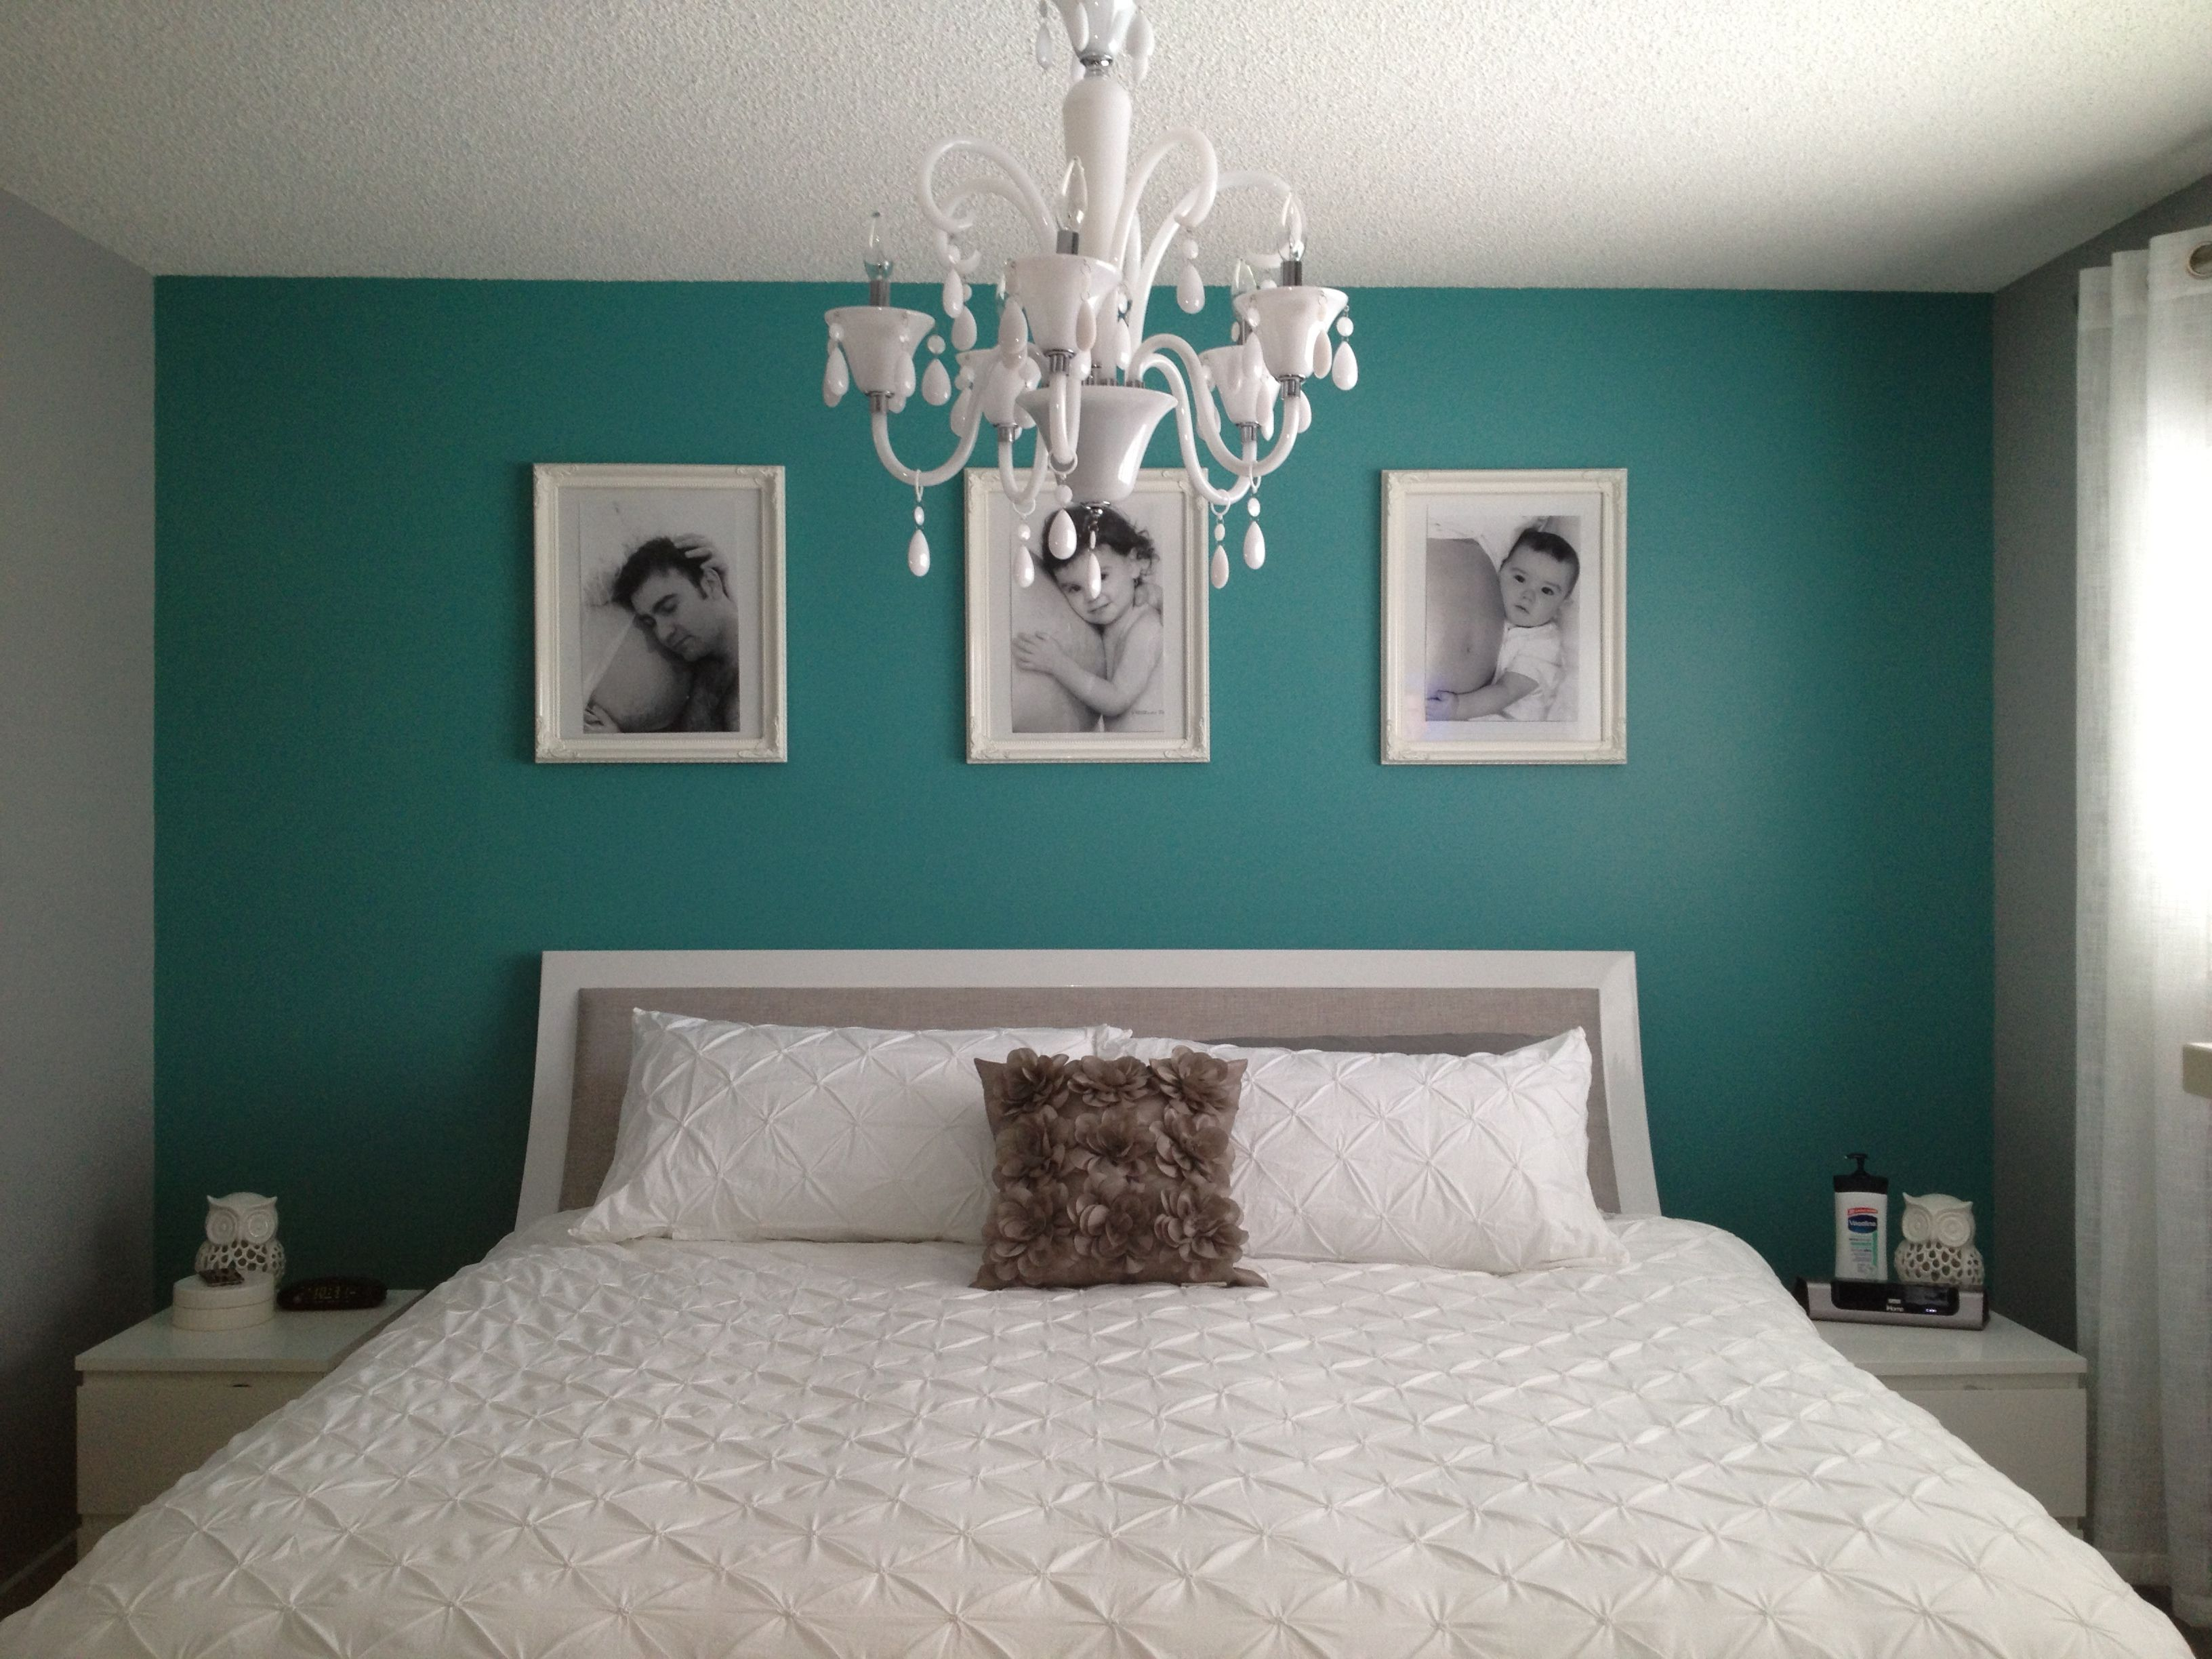 Grey And Teal Bedroom How Do We Think This Would Look With A Black Sleigh Bed So Instead Of The White You Only One Wall